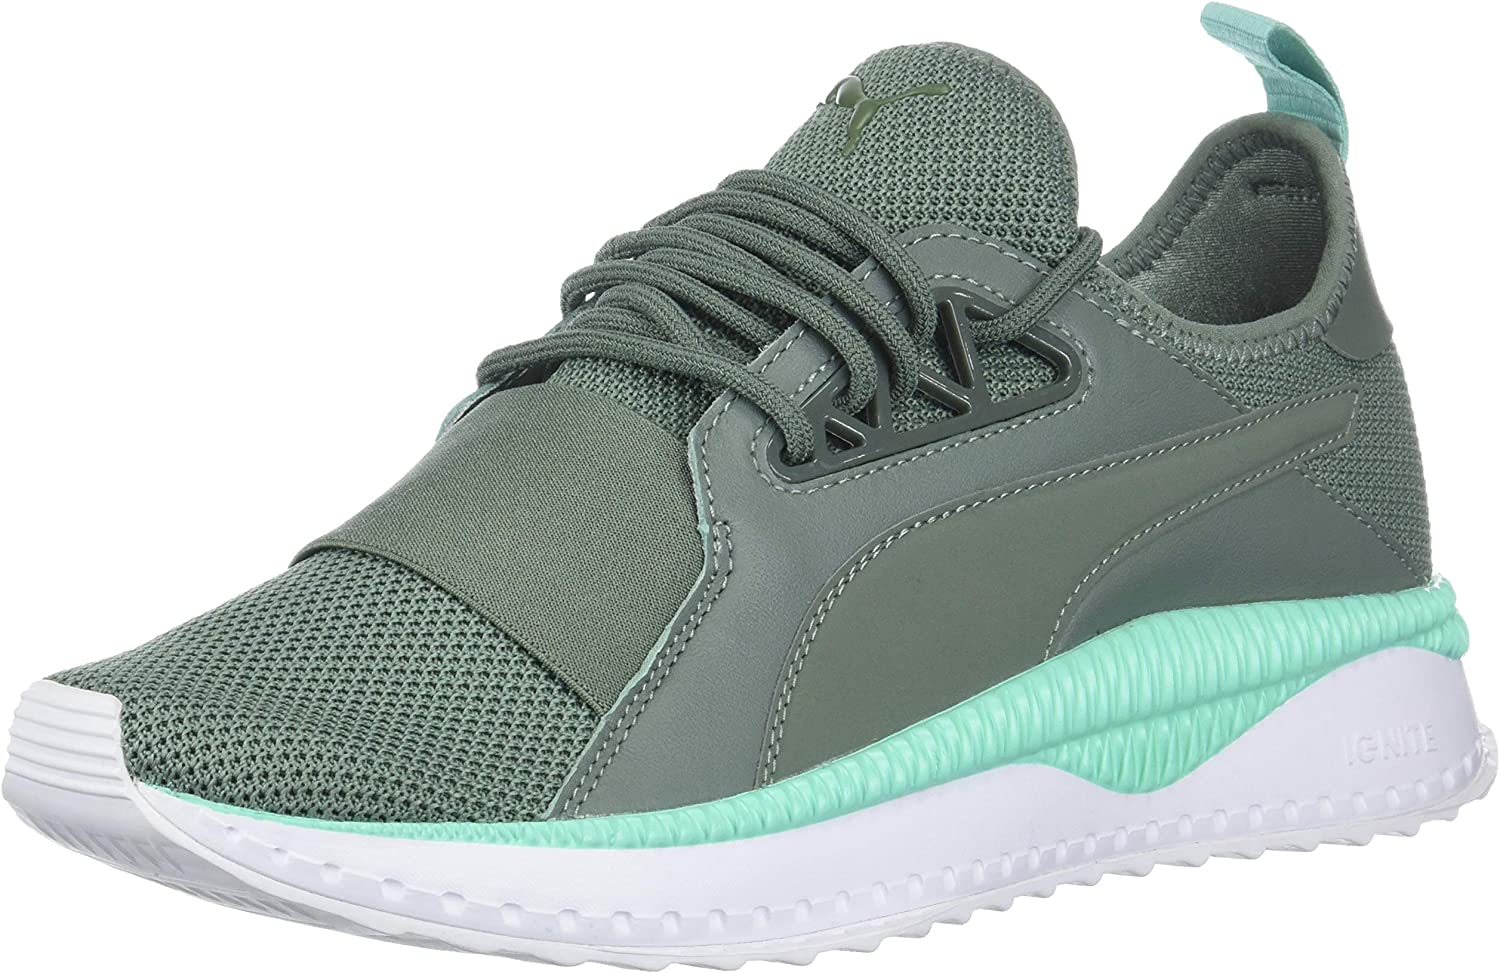 PUMA Womens Tsugi Apex Jewel Sneaker